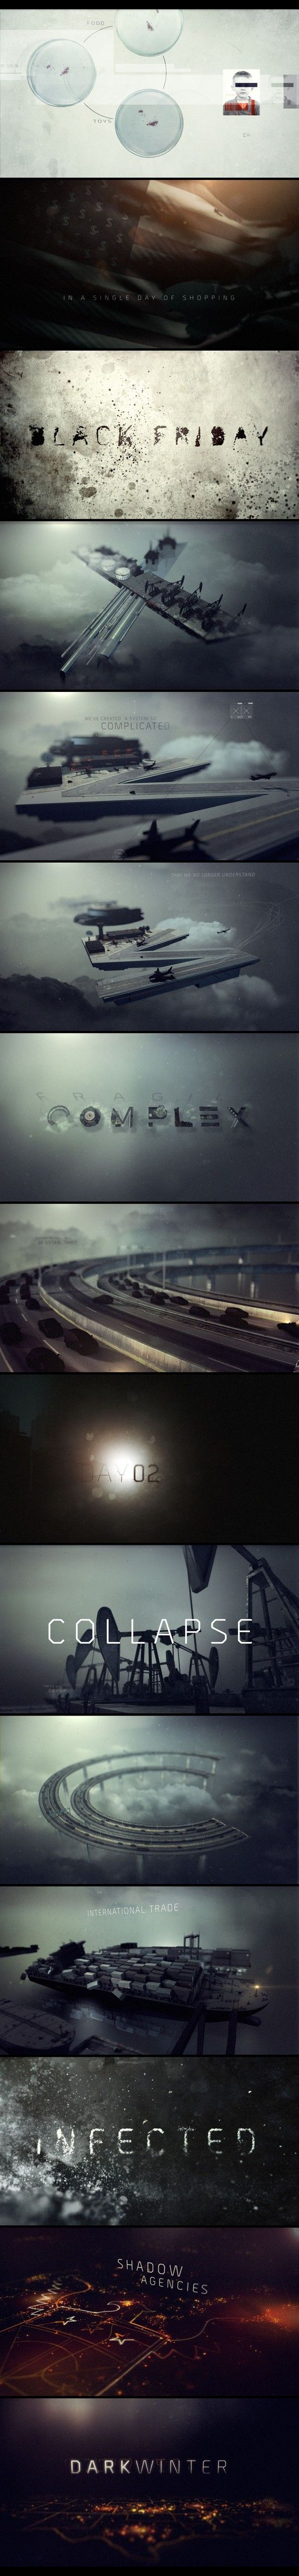 Fantastic motion graphics from the teaser trailer for Tom Clancy's The Division.